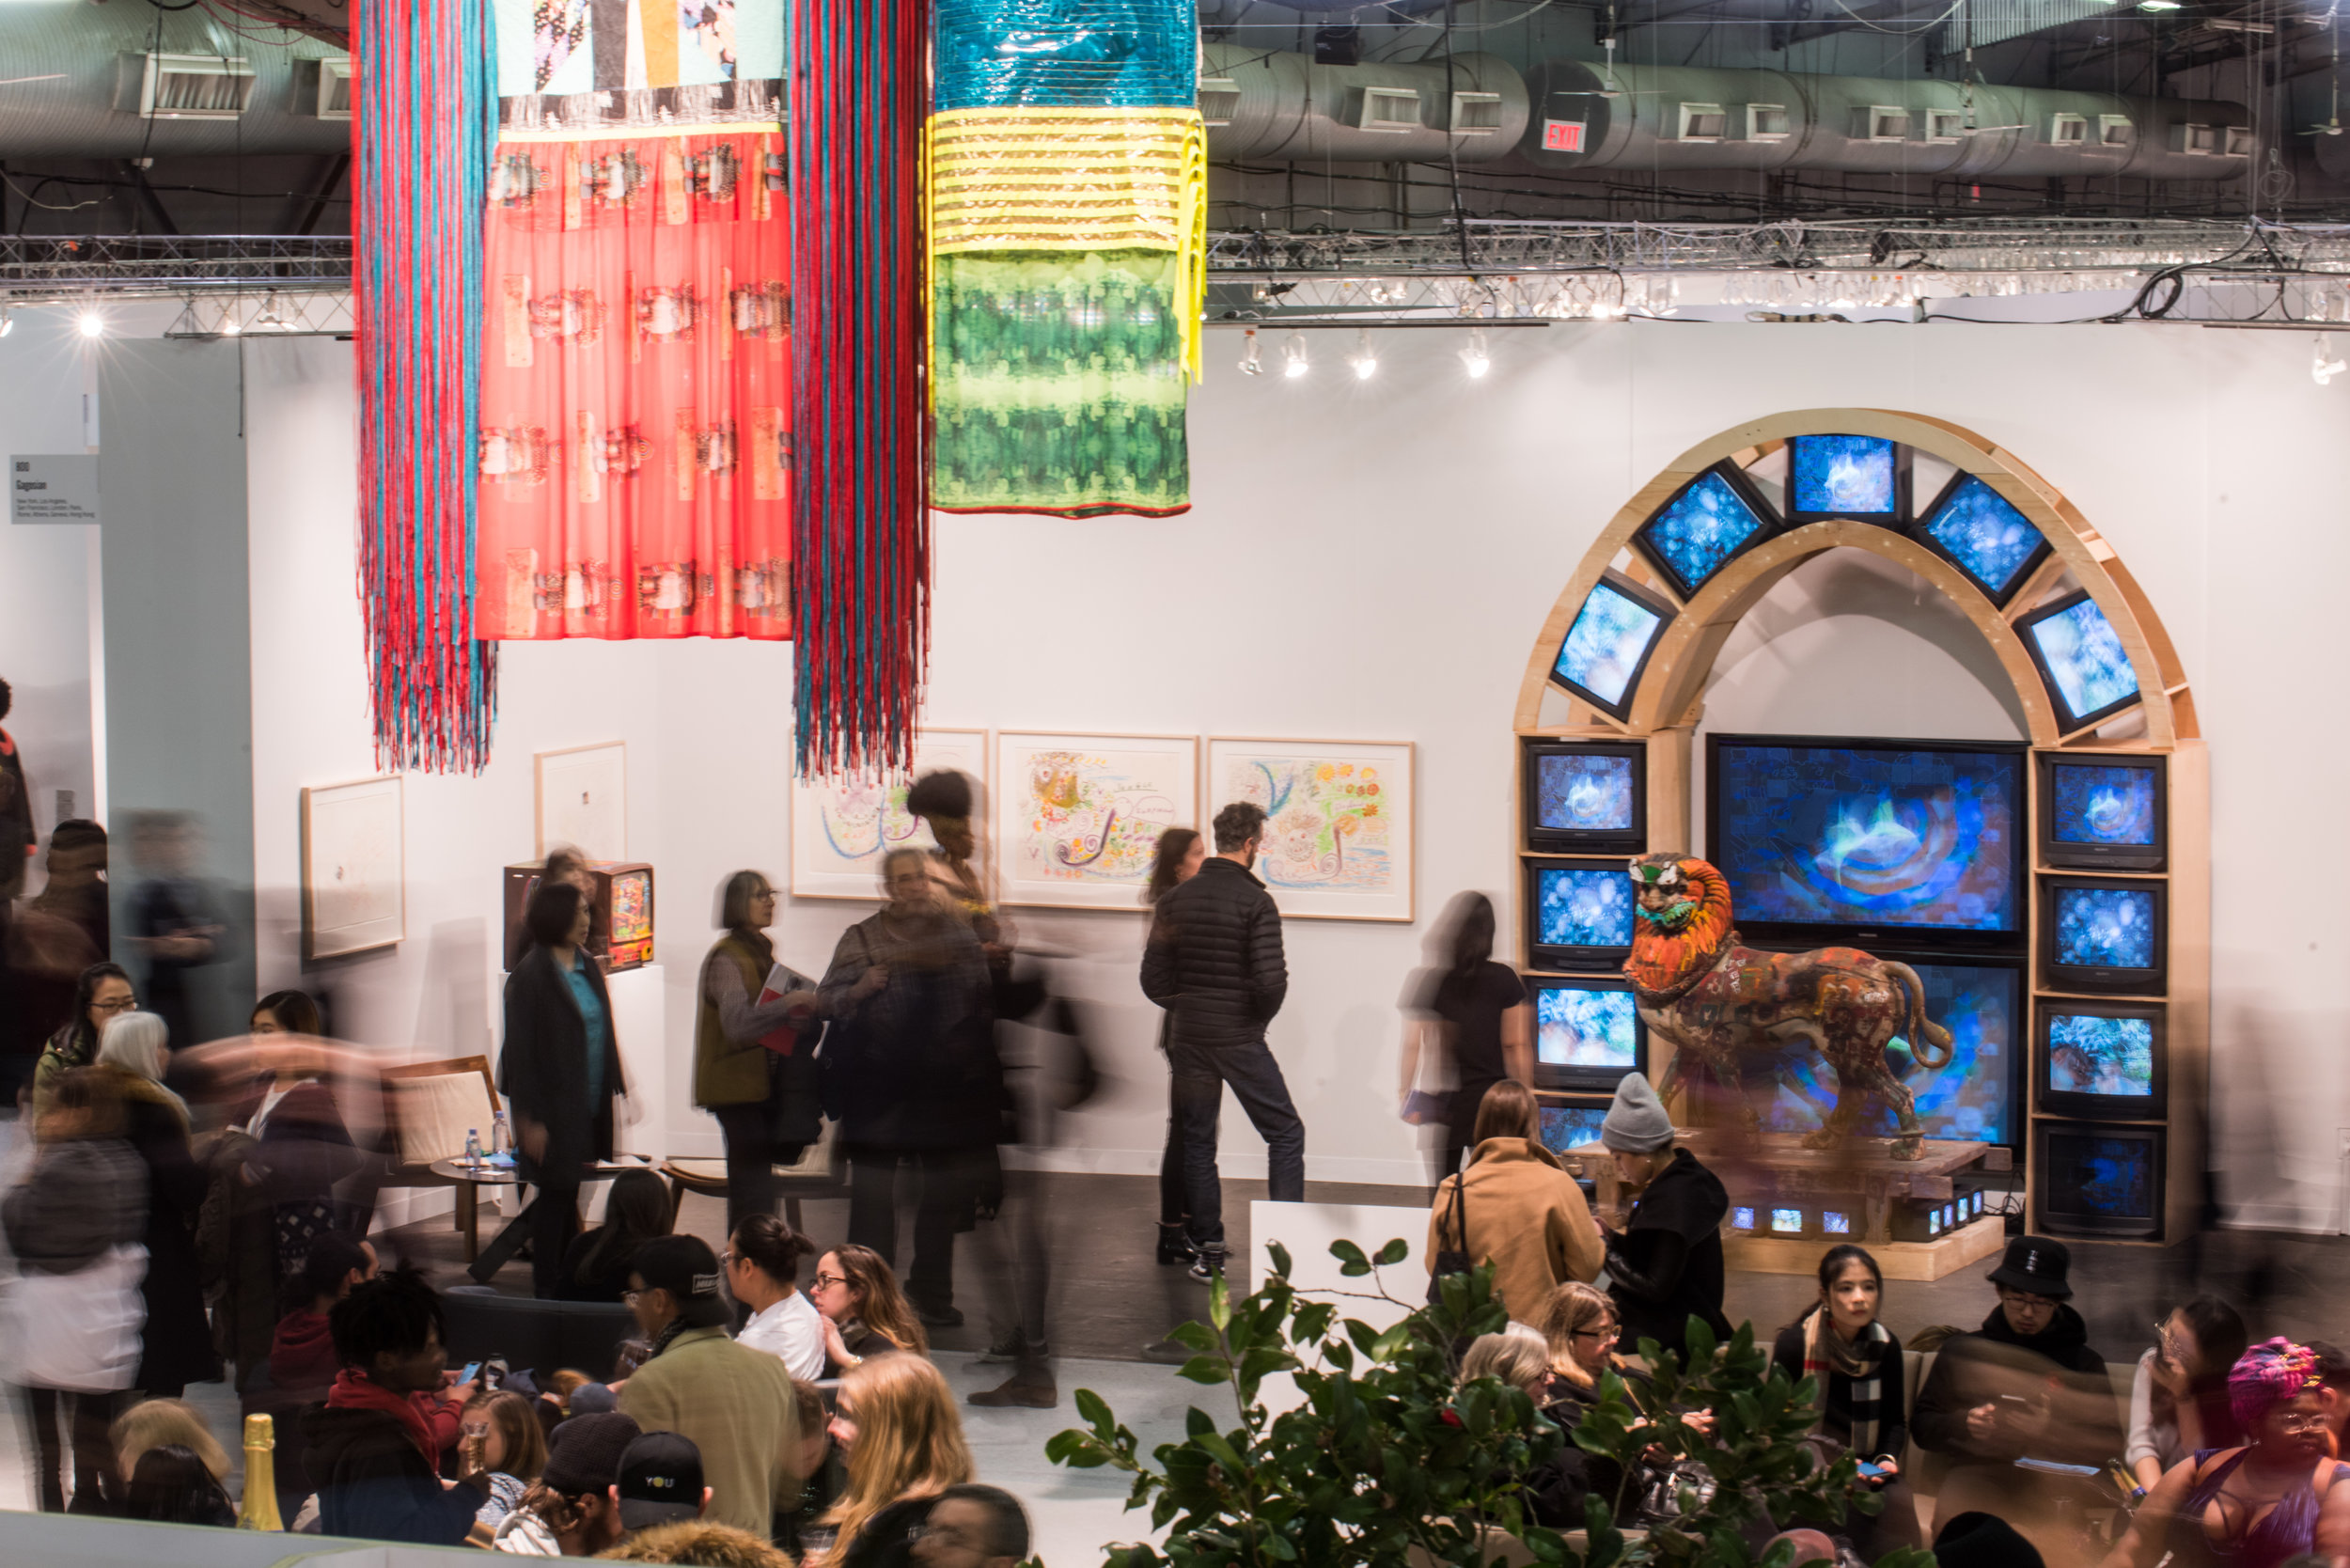 The Armory Show 2018, Pier 94 Central Lounge. Photo by Teddy Wolff courtesy of The Armory Show